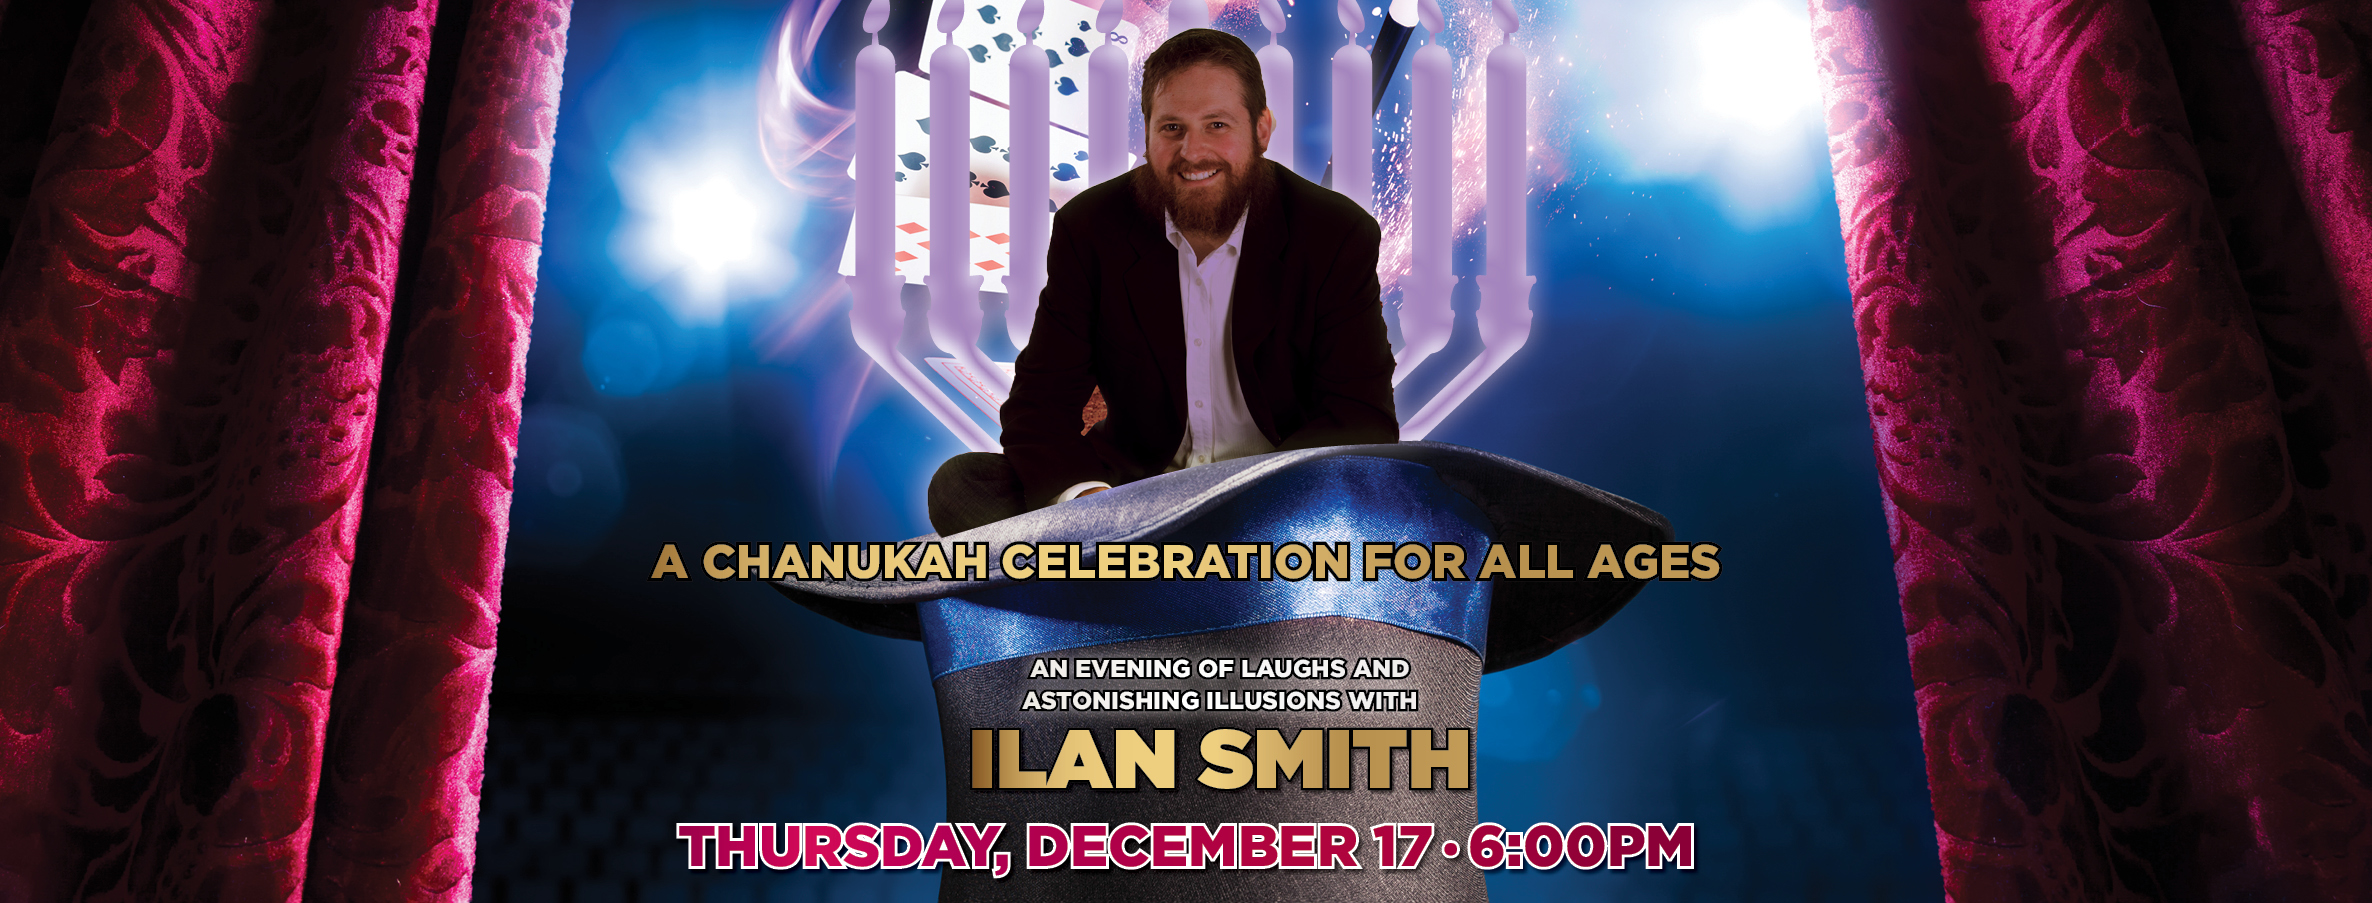 Chanukah Ilan Smith 2020 banner.jpg